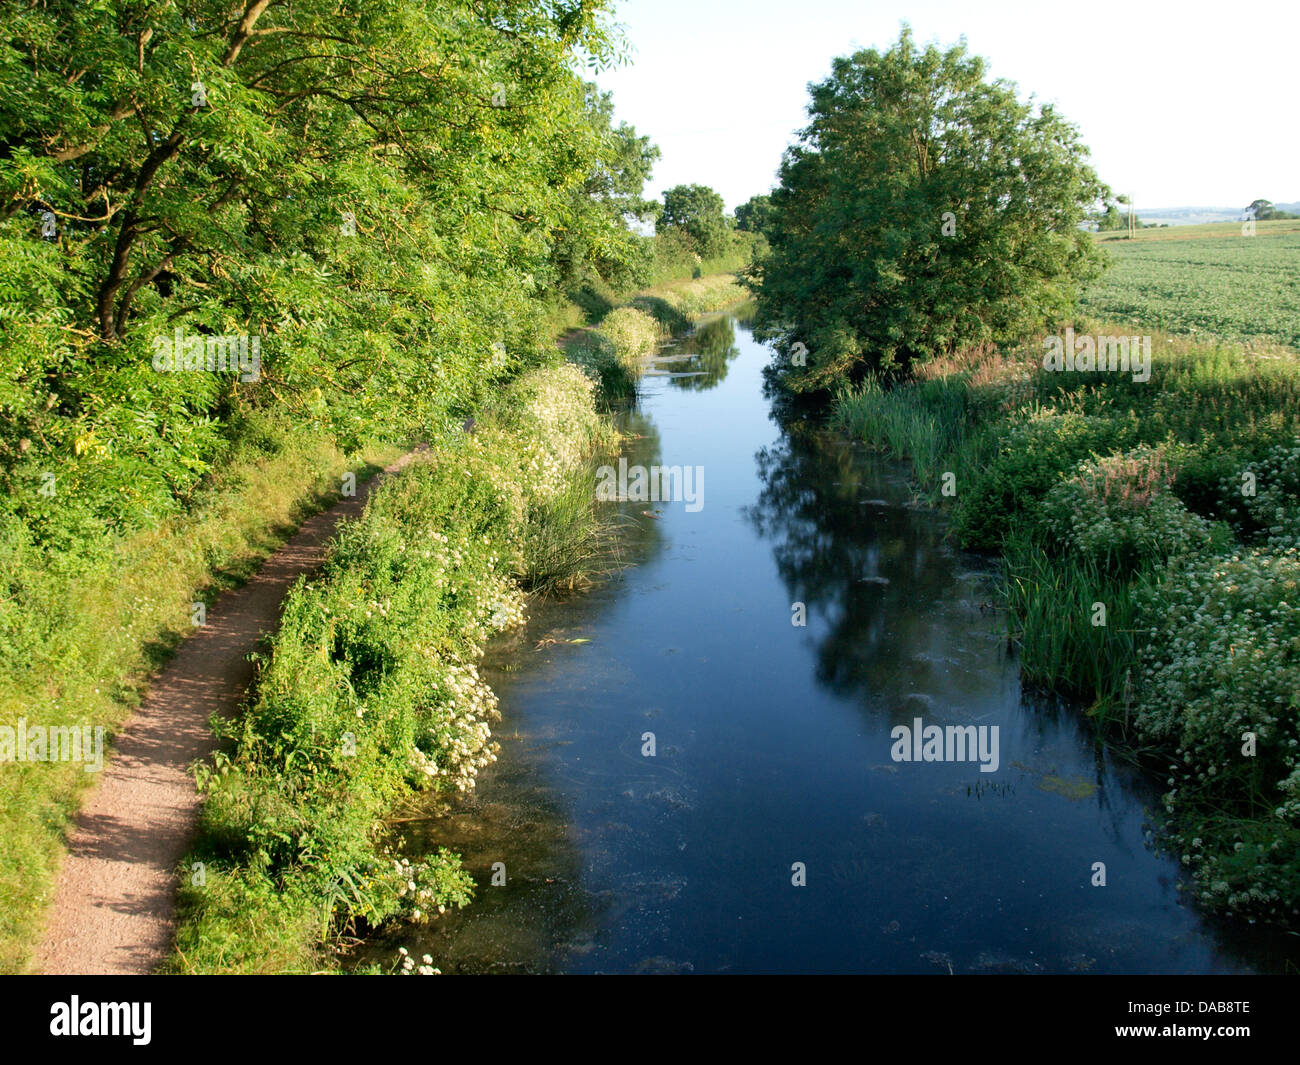 Towpath of The Grand Western Canal near Sampford Peverell, Devon. UK - Stock Image